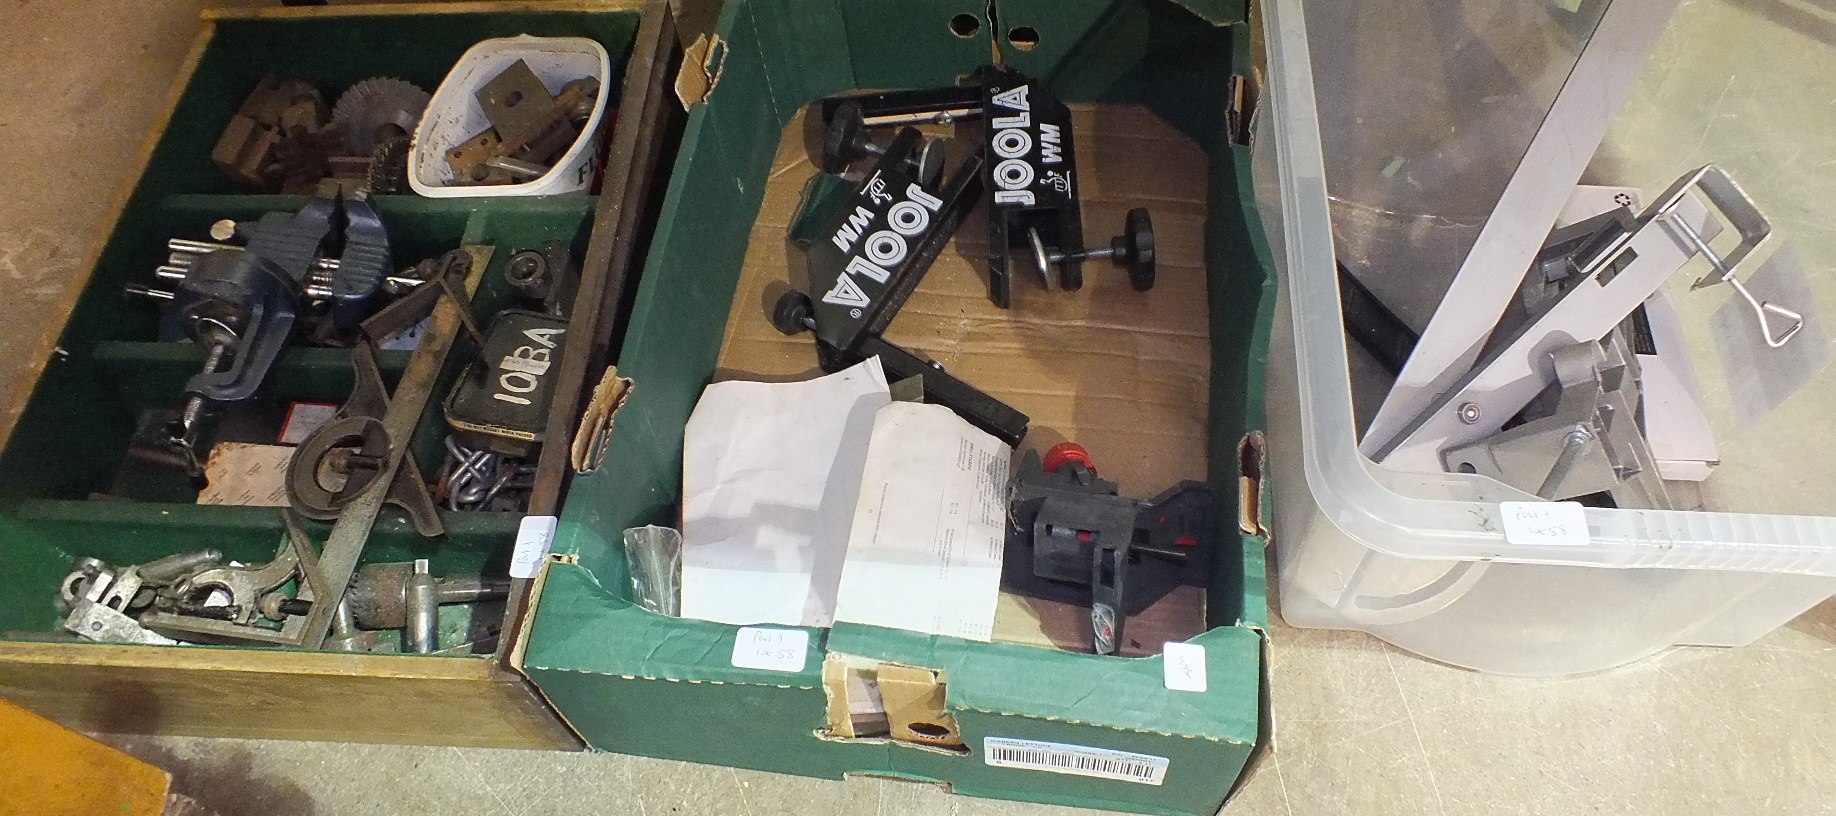 Lot 58 - A Perfecto Engineering Co. Ltd model engineering lathe no.361, with tools and accessories.